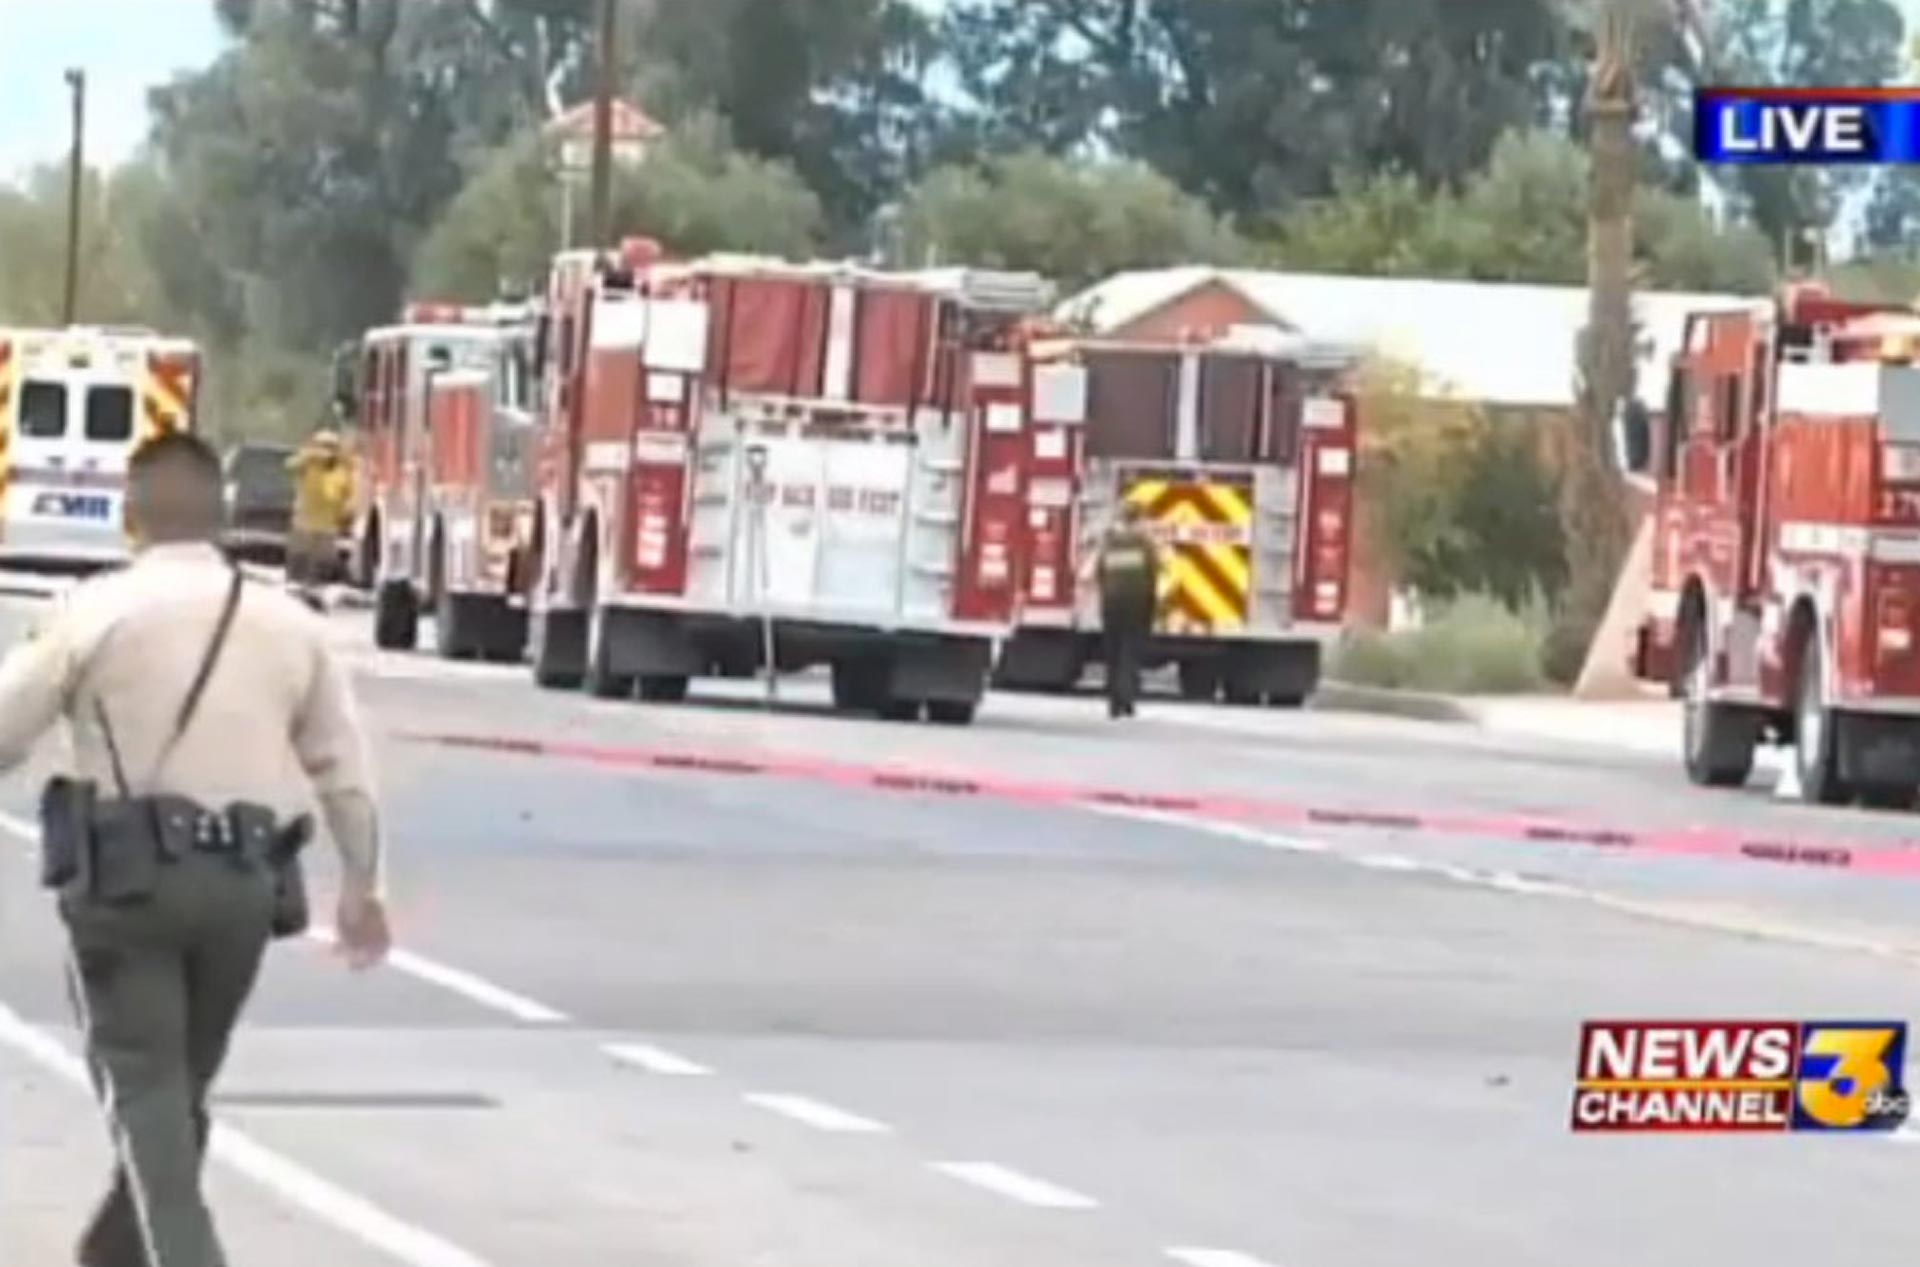 A screen capture of an ABC News broadcast shows fire trucks arriving outside the Islamic Center of Palm Springs.